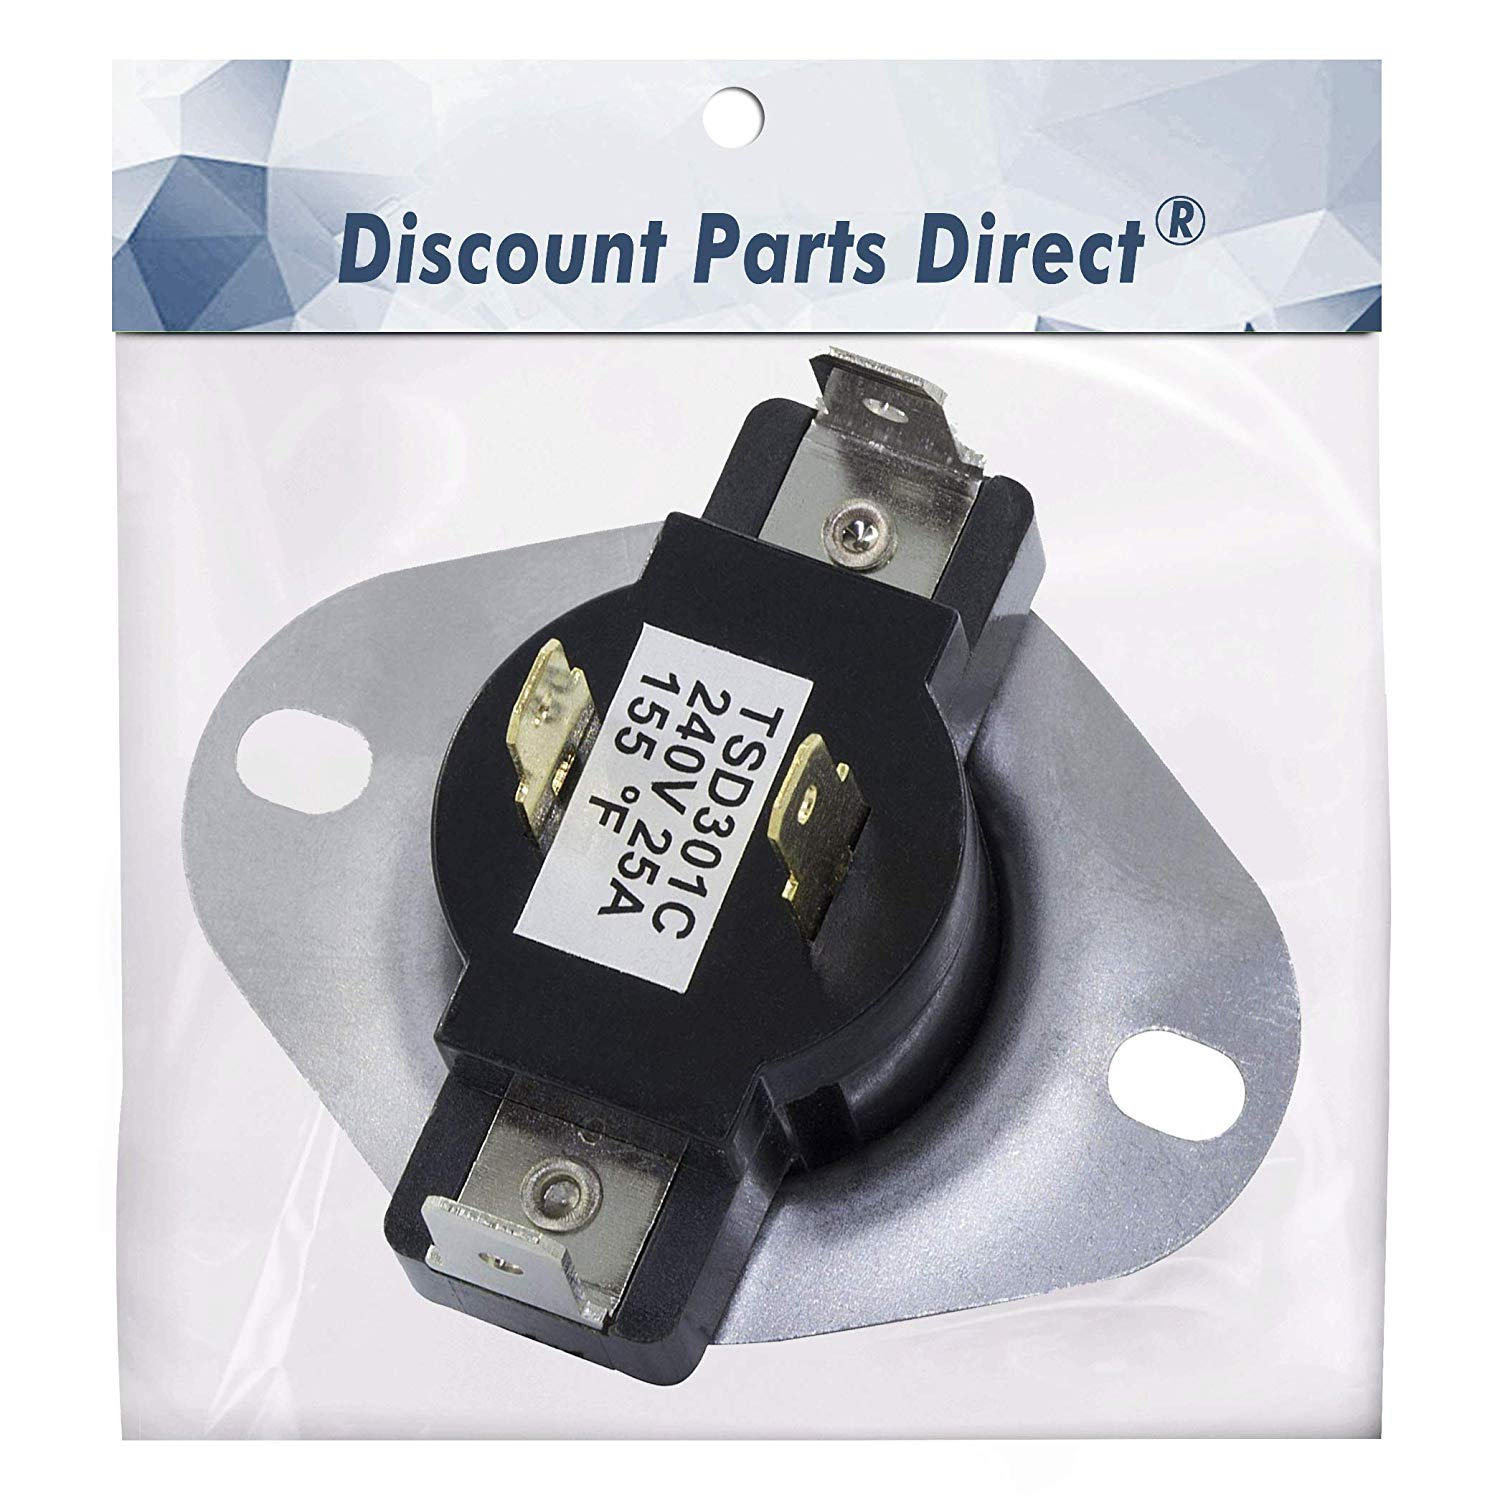 3387134 Cycling Thermostat Dryer Replacement Part Compatible With Whirlpool /& Kenmore Replaces WP3387134 AP6008270 3387139 WP3387134VP 3387135 306910 PS11741405 2011 ET187 2893 EAP11741405